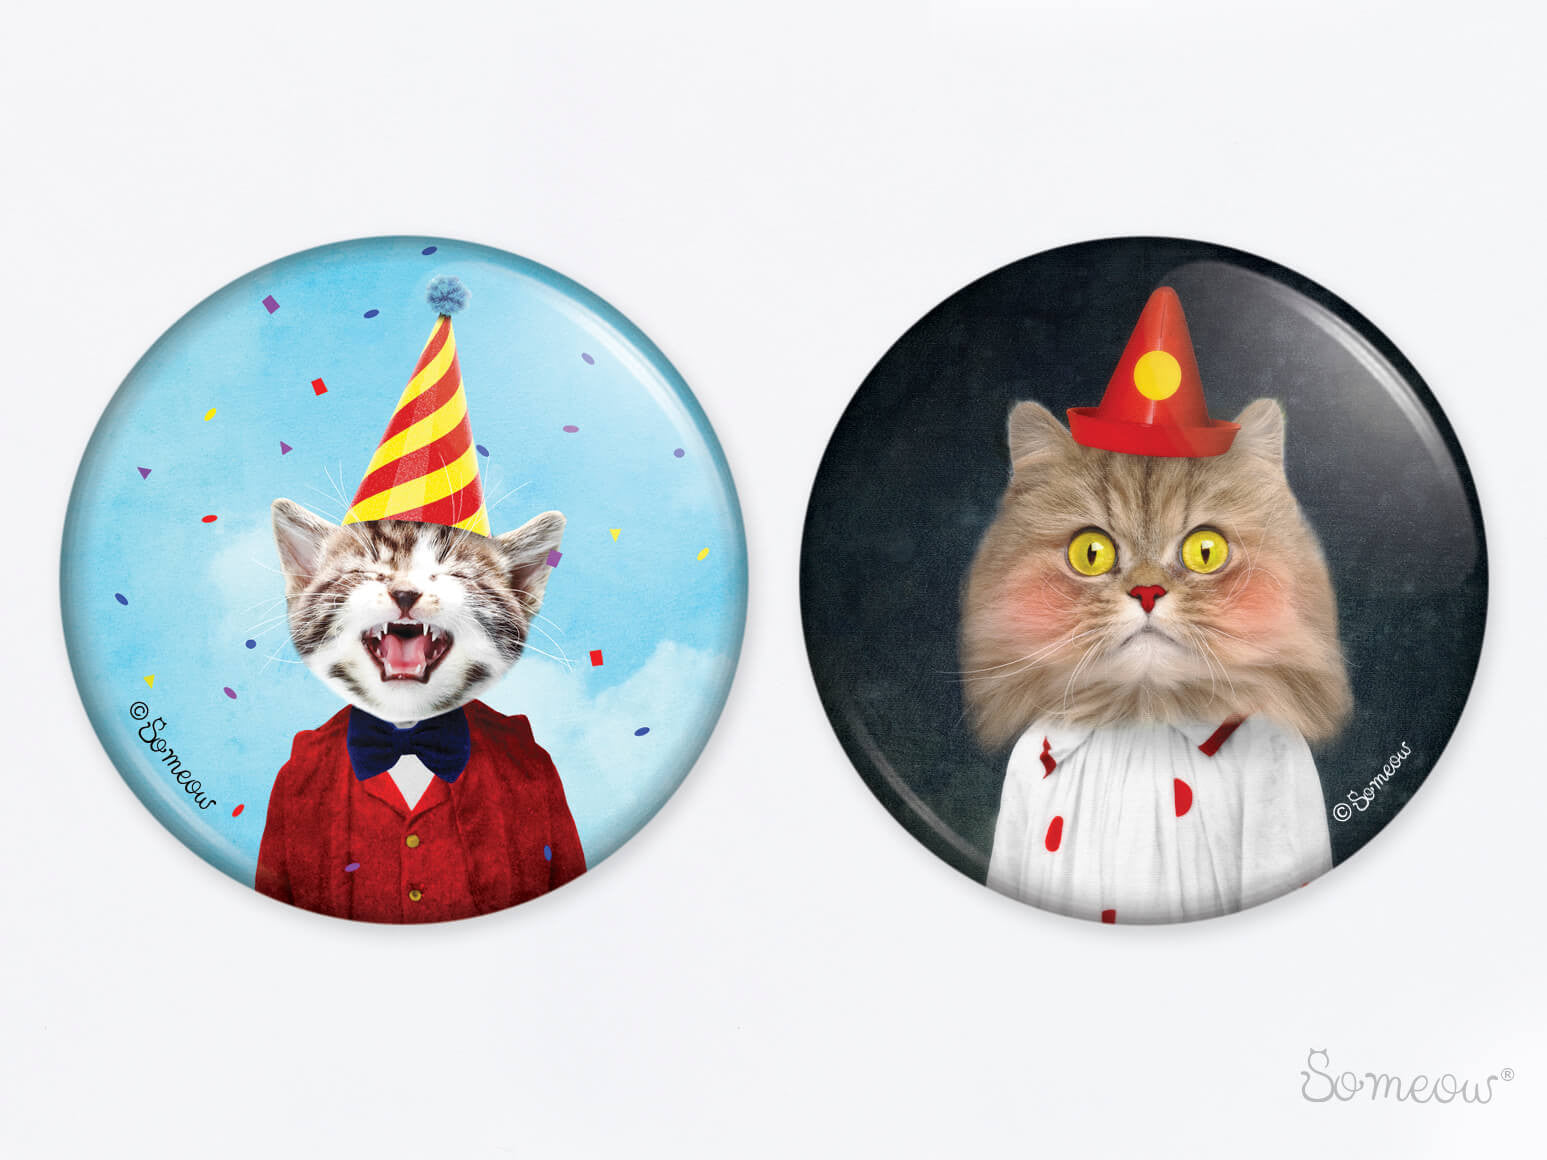 Duo Party et Le clown - Ensemble de 2 aimants de chats